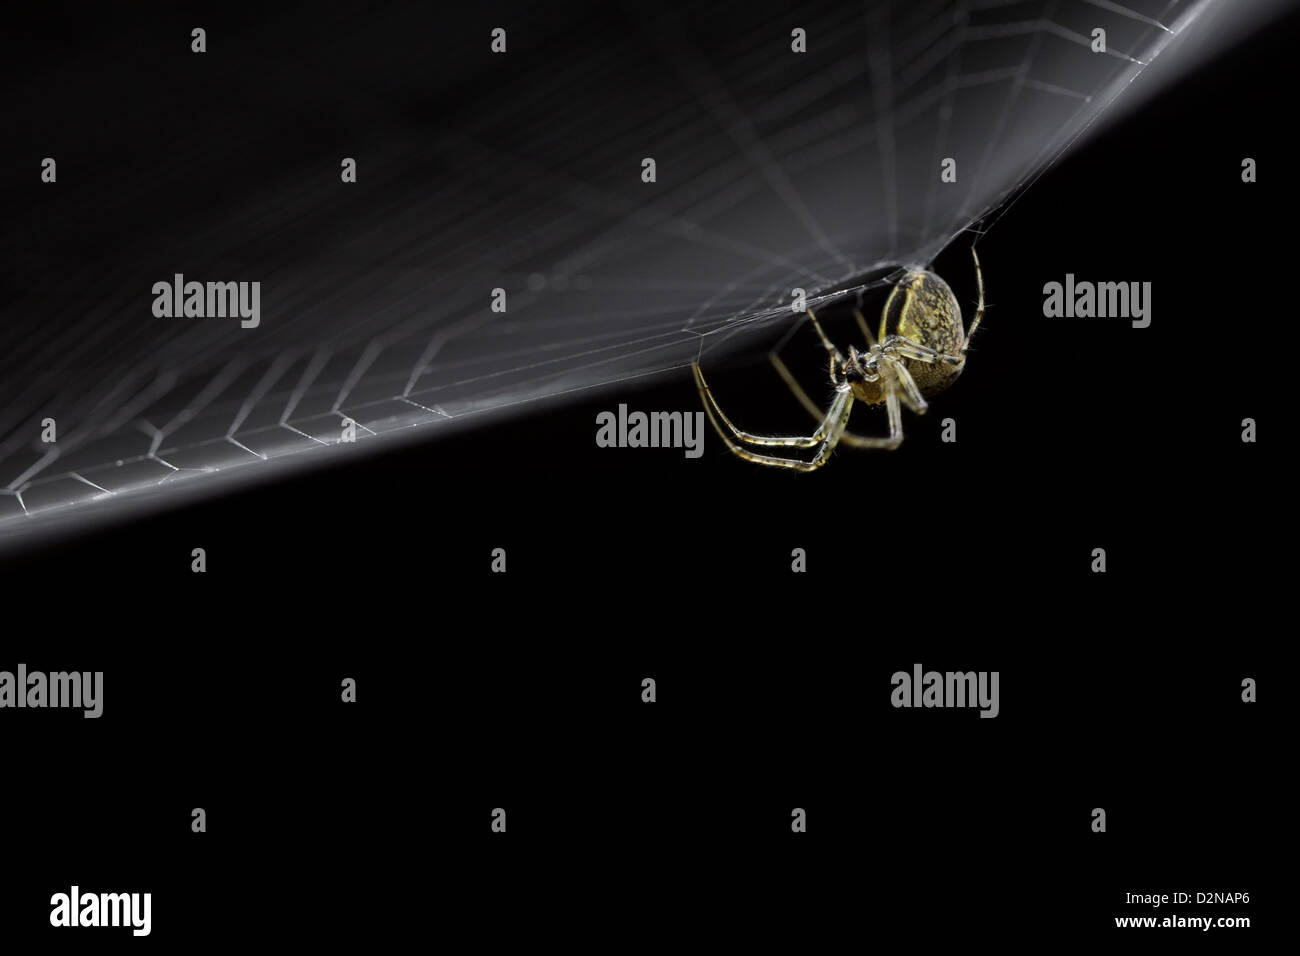 spider hanging from its web lit from above with a dark background - Stock Image